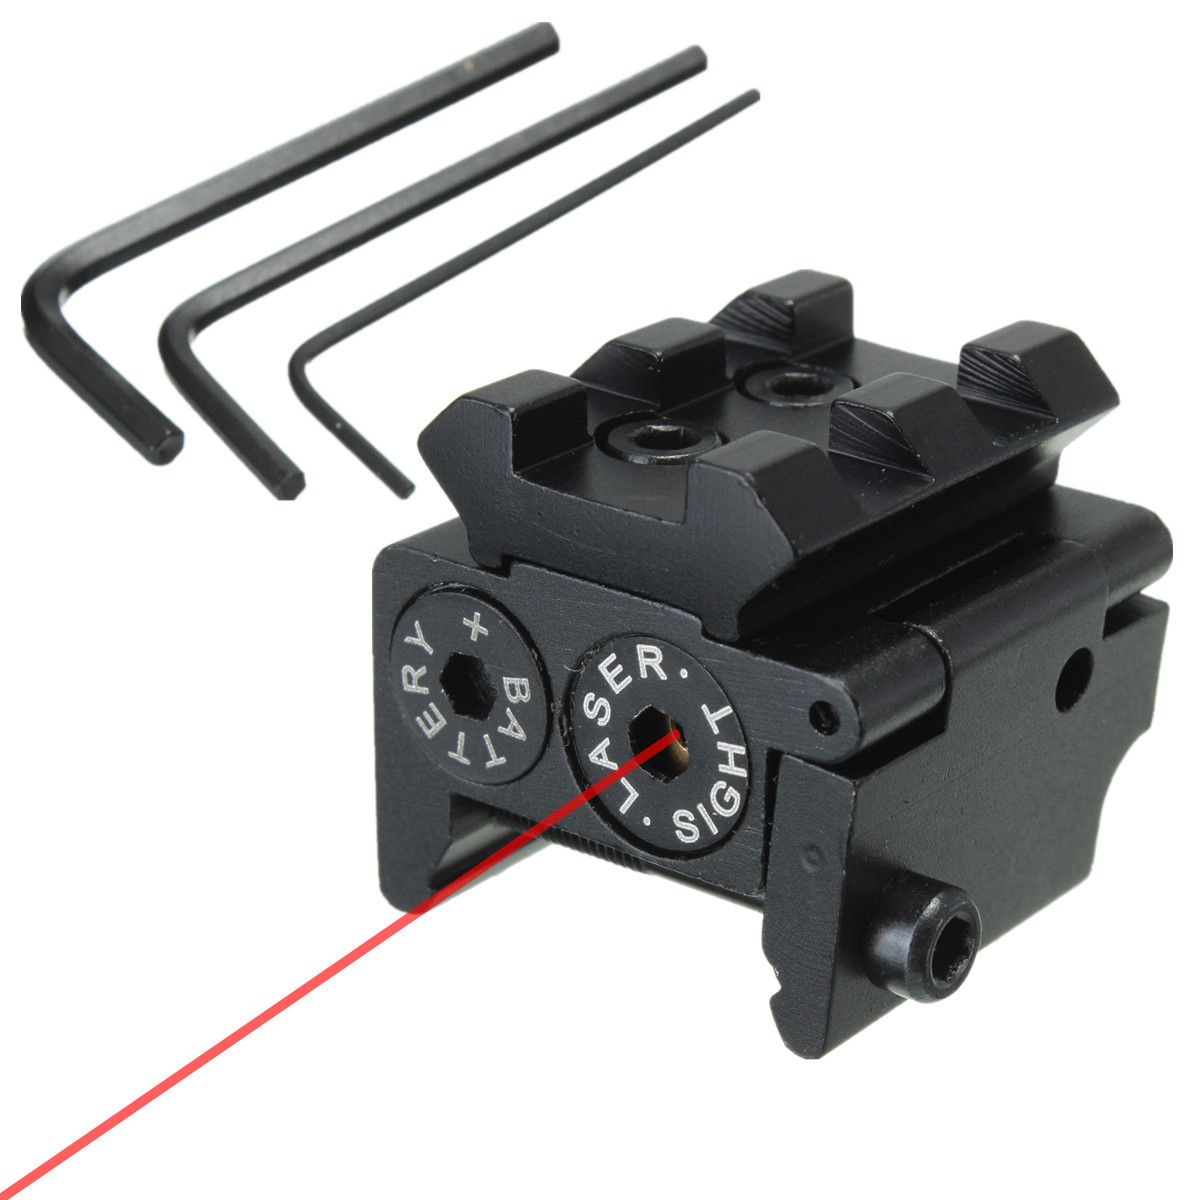 Mini Compact Tactical Red Dot Laser Bore Sight Scope With 20mm Picatinny Rail Mount sniper tactical wkp 1 5 6x44sal riflescope glass etched reticle hunting optics sight with rg illuminated with bubble level scope